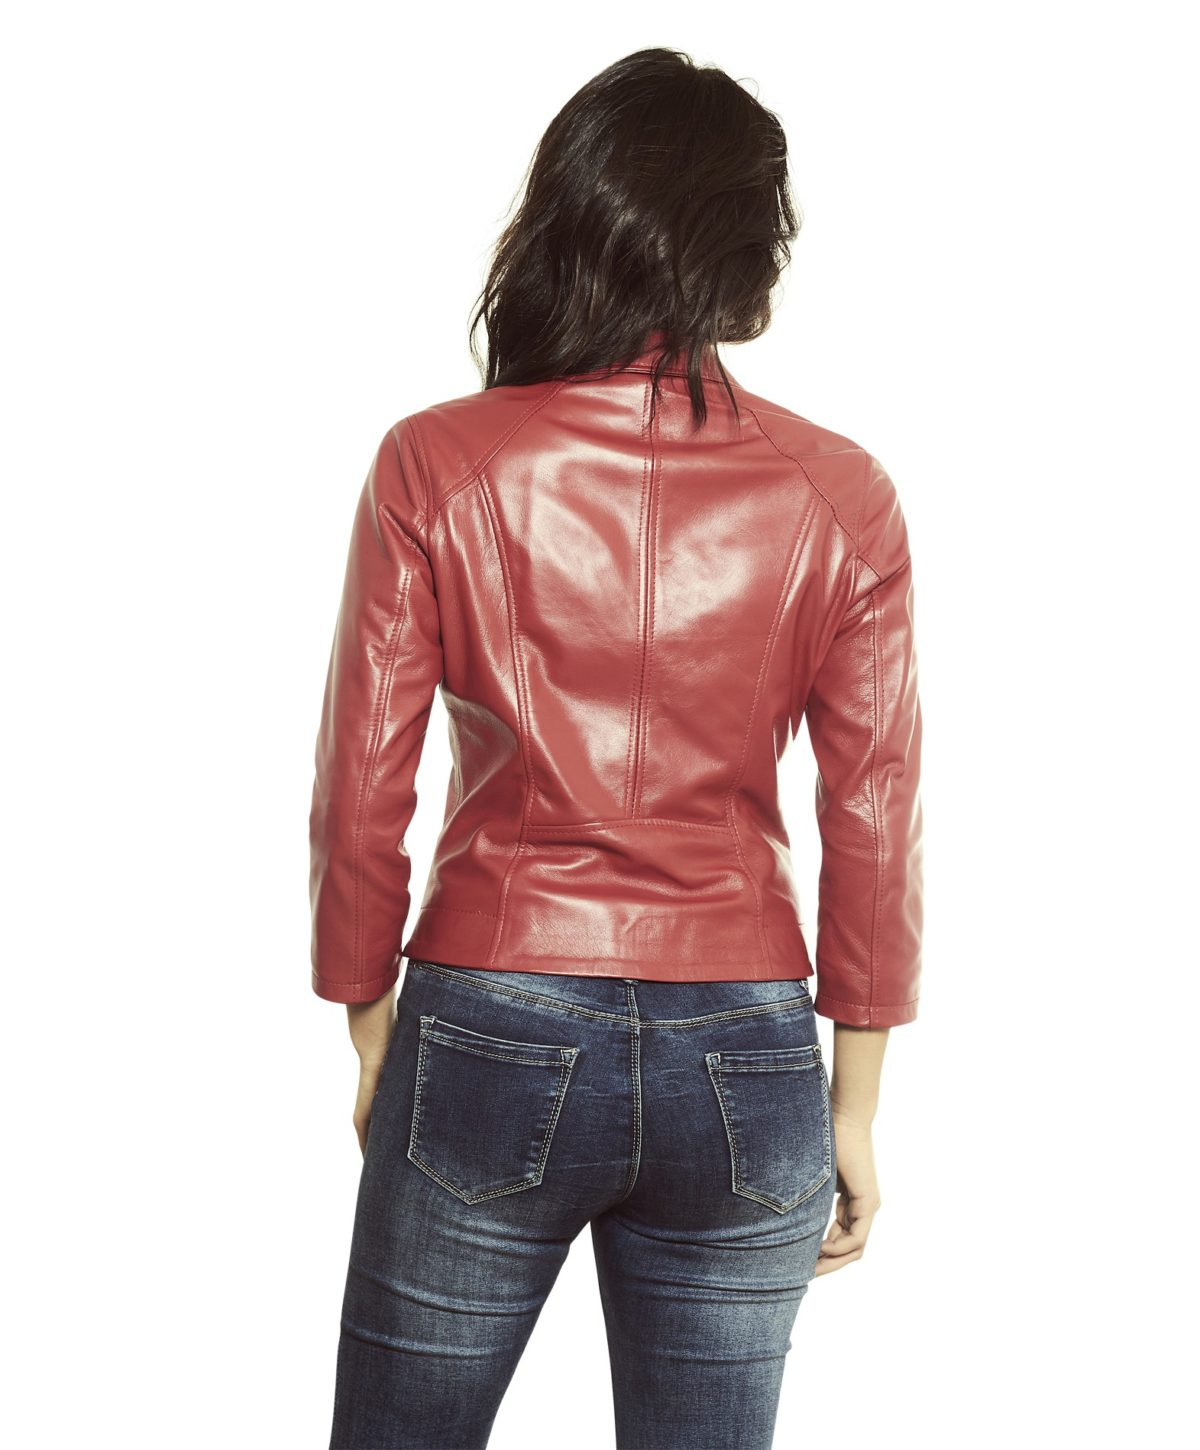 kcc-red-color-lamb-leather-perfecto-jacket-smooth-effect (3)